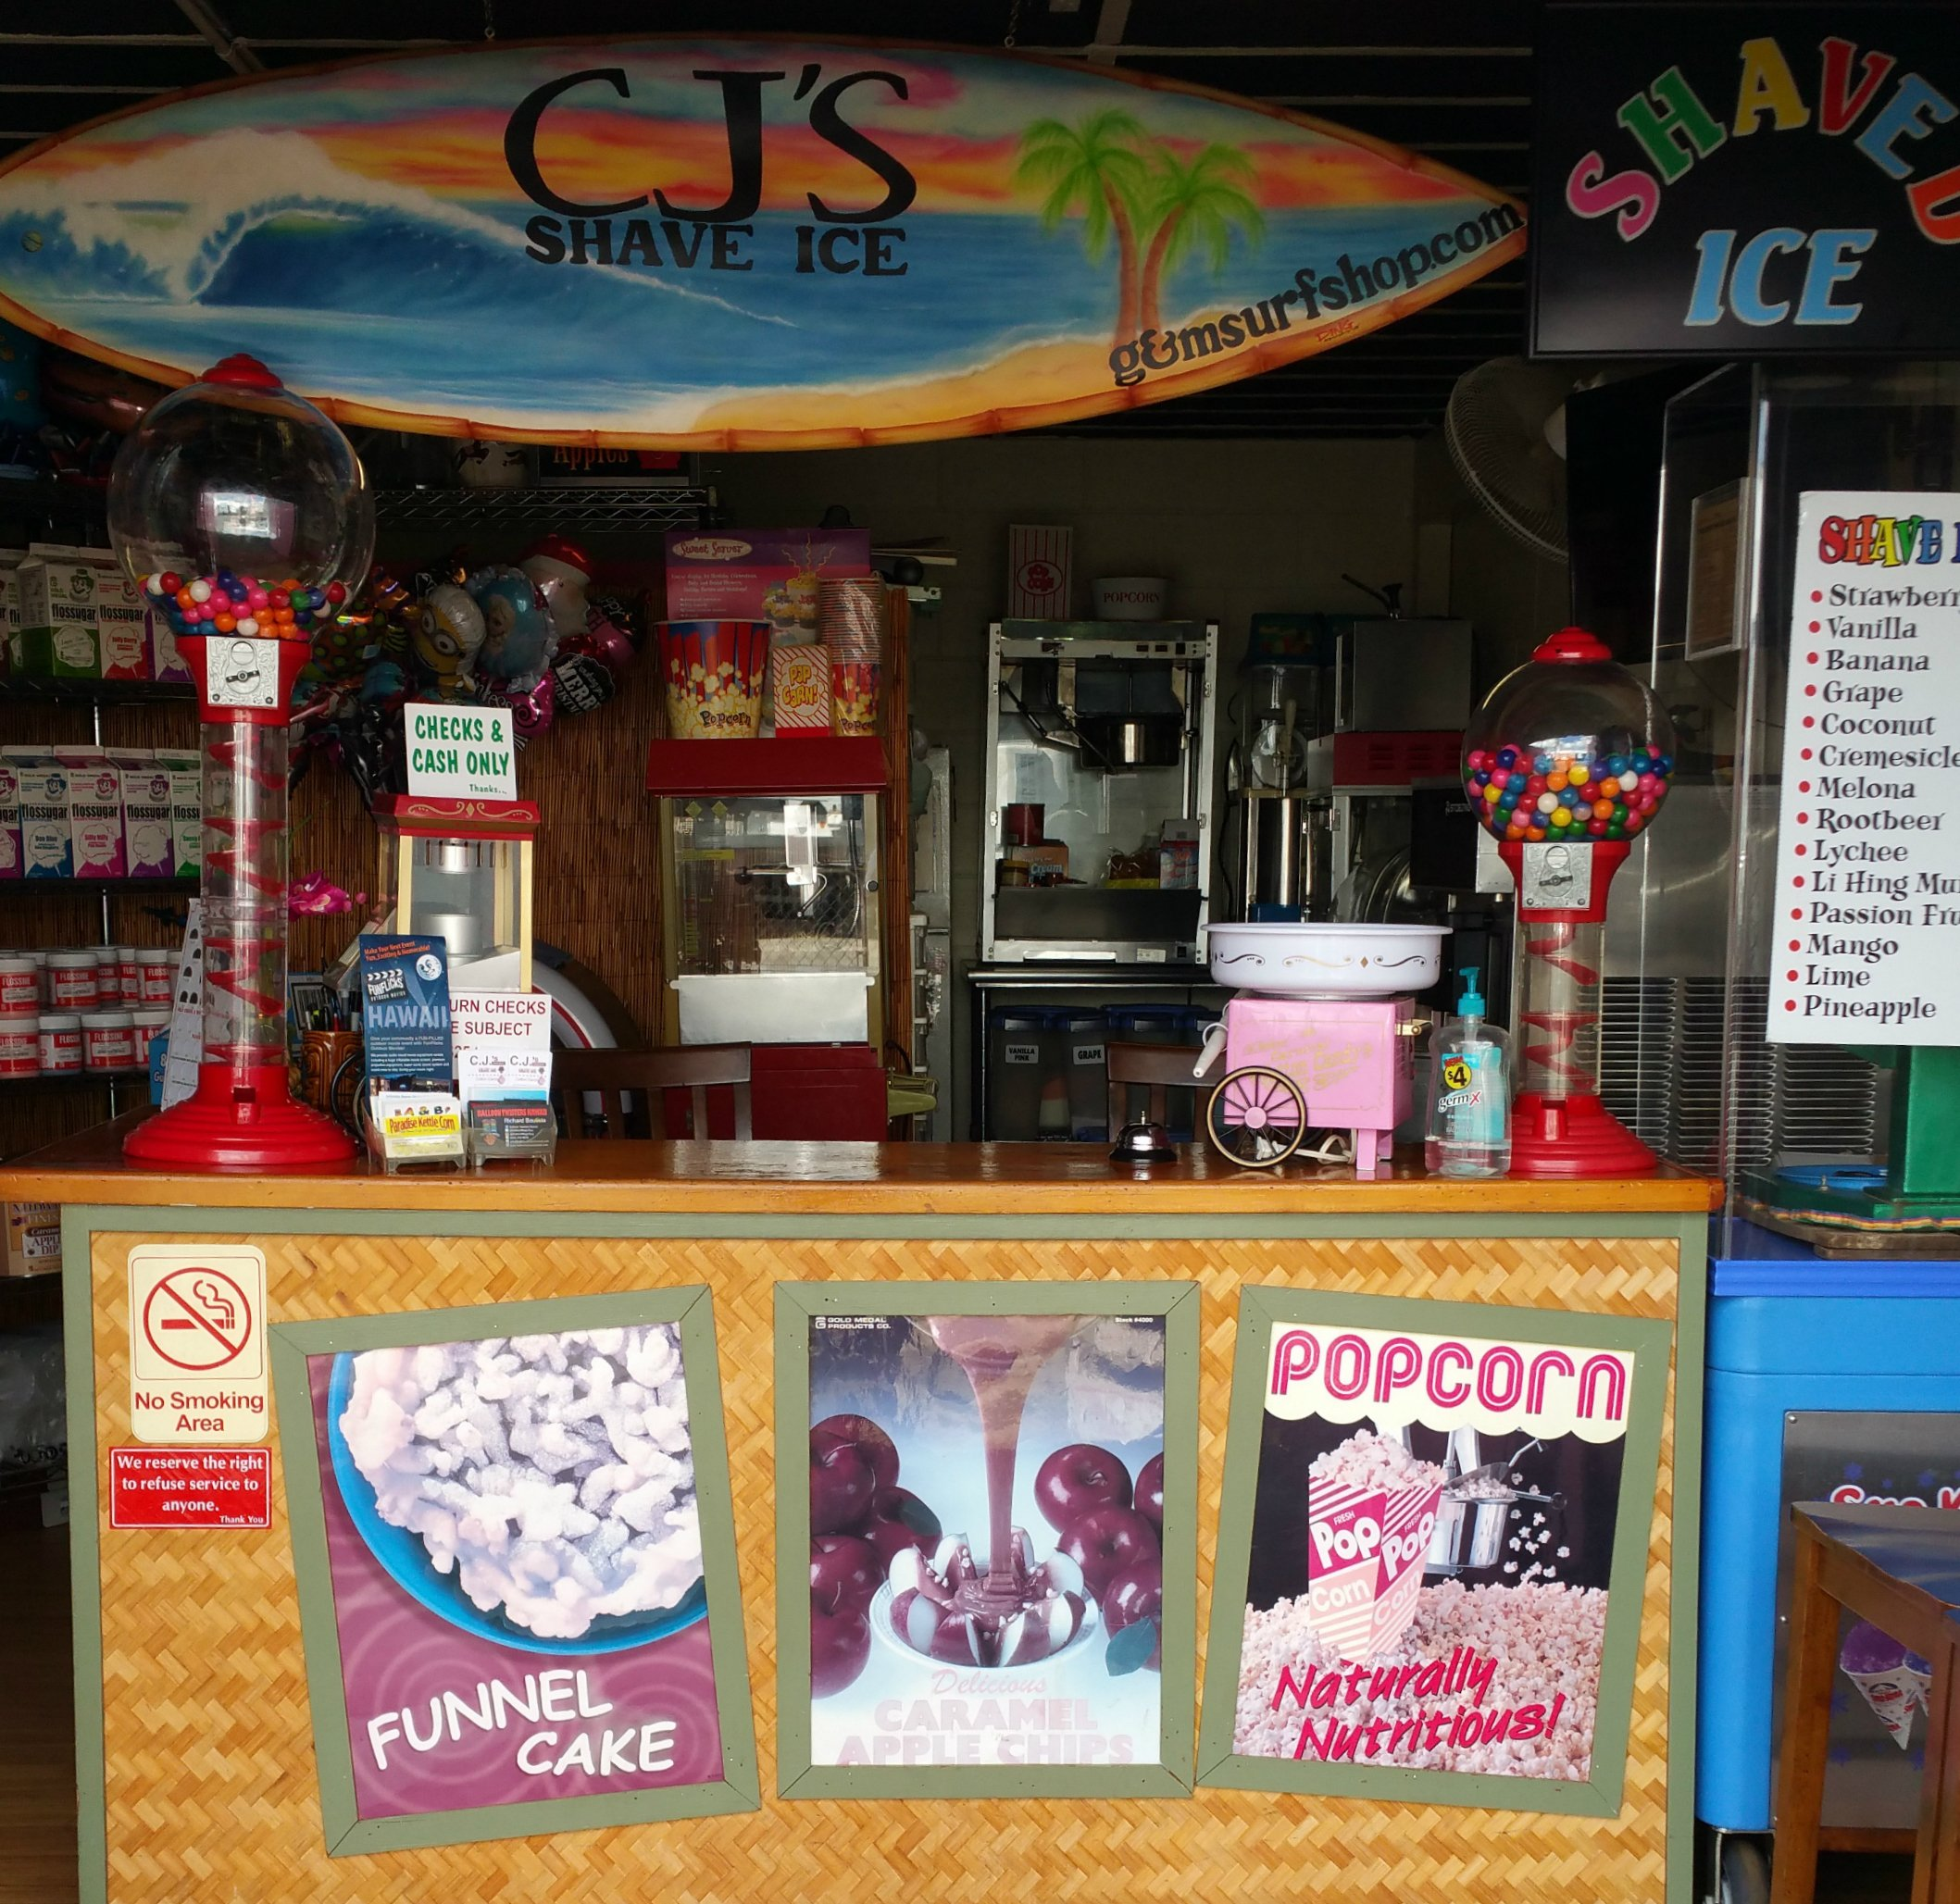 CJ's Shave Ice front desk in Honolulu, HI